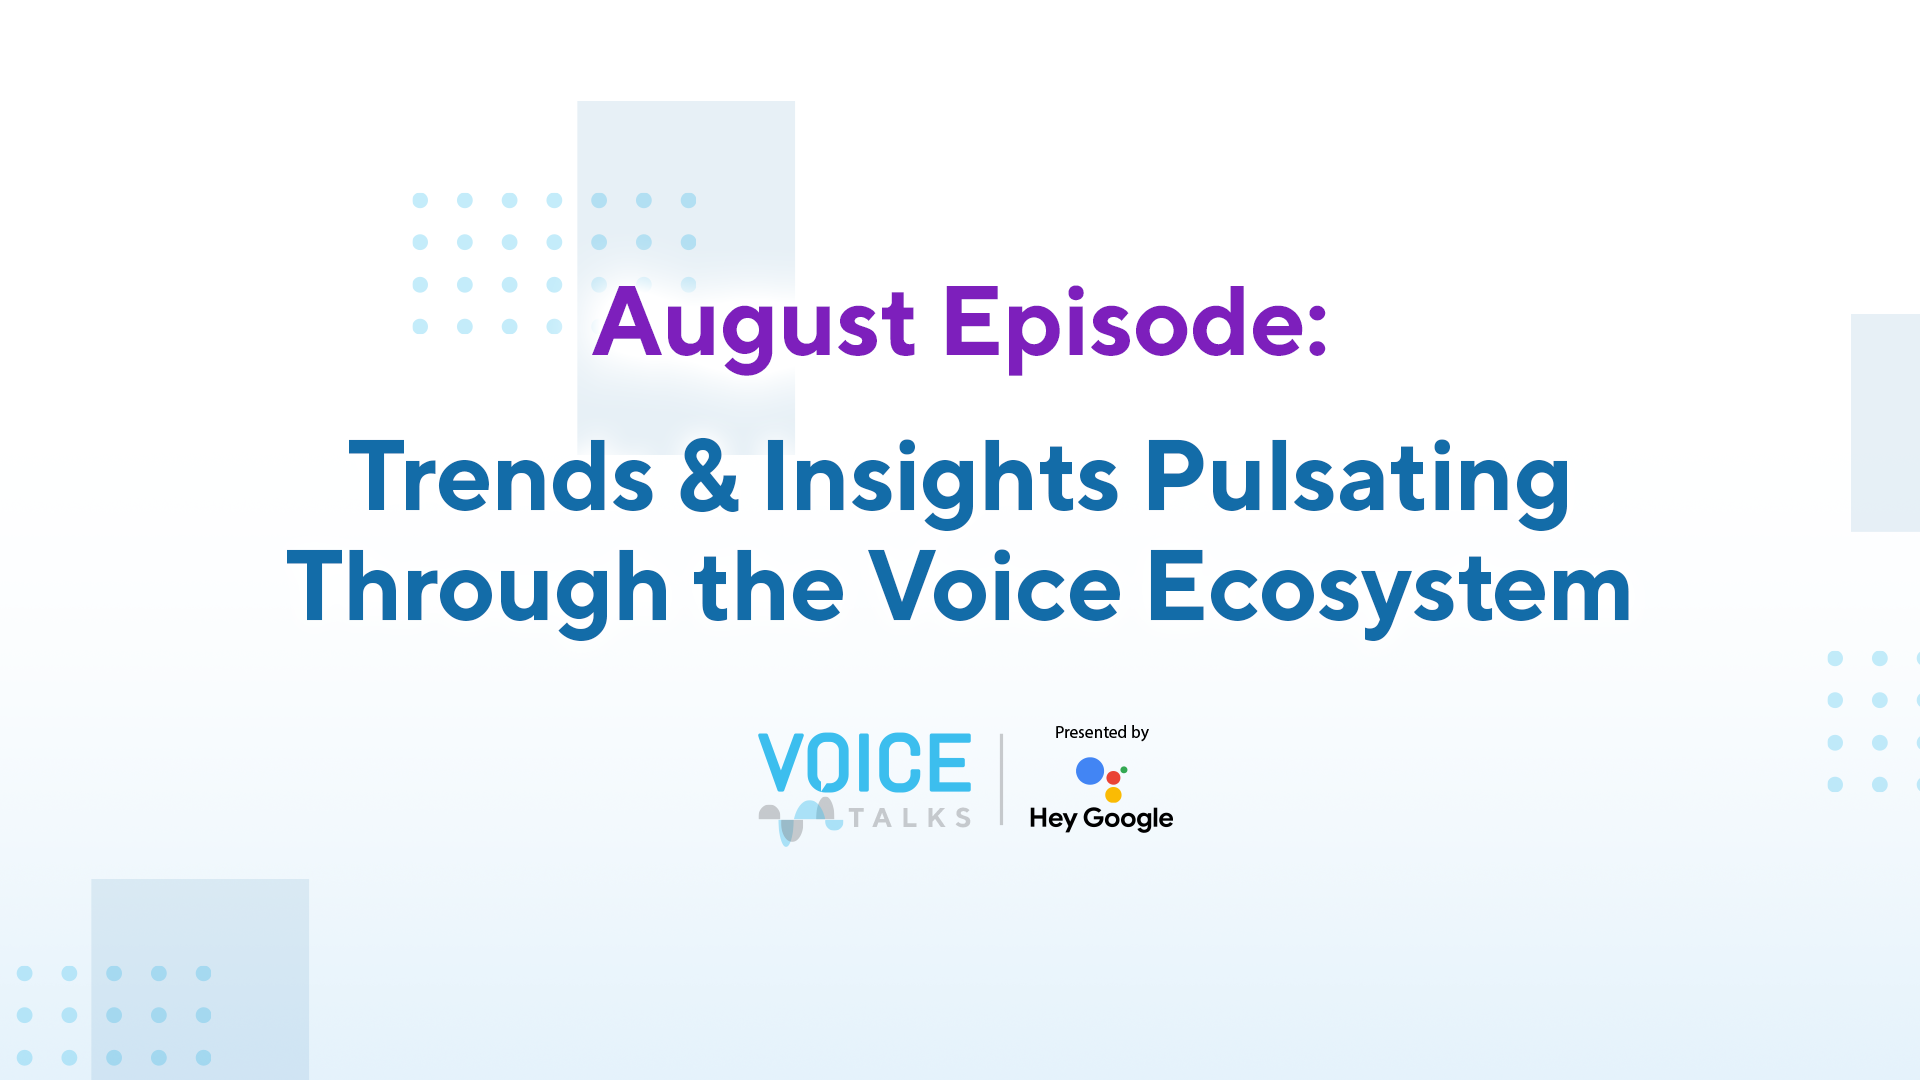 August Episode: Trends & Insights Pulsating through The Voice Ecosystem